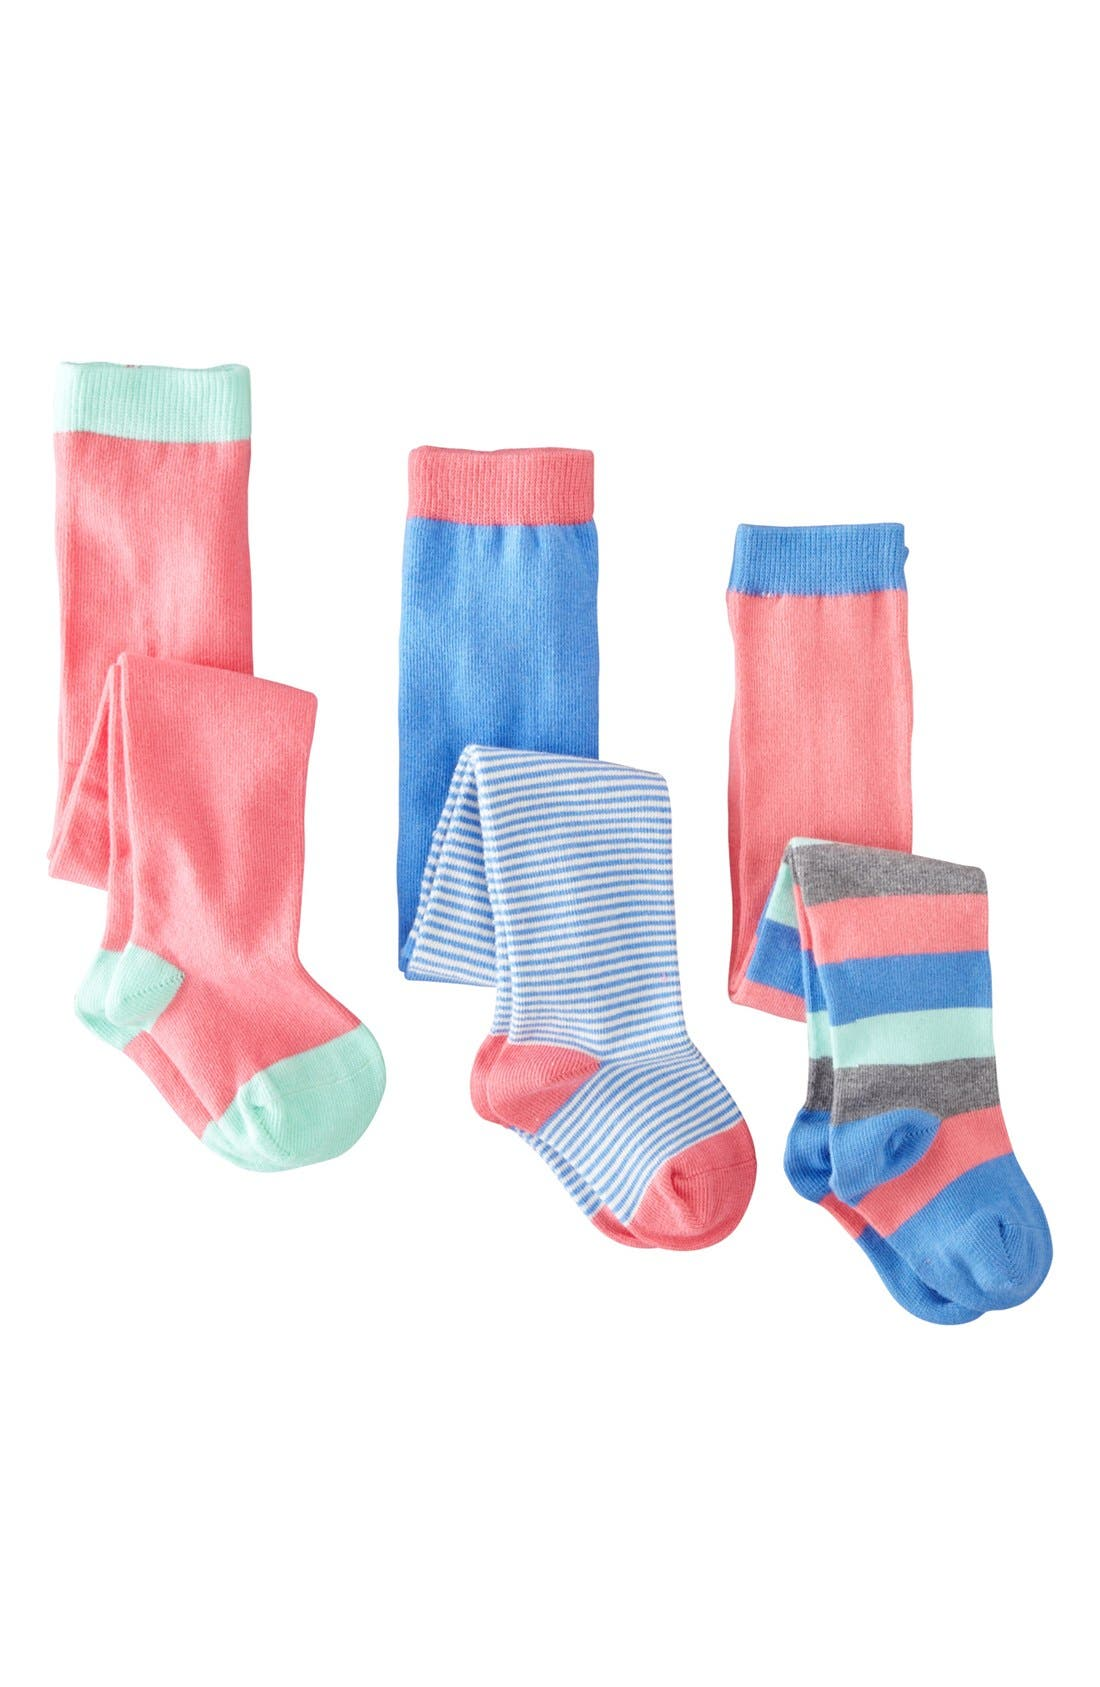 Main Image - Mini Boden Patterned Tights (3-Pack) (Baby Girls & Toddler Girls)